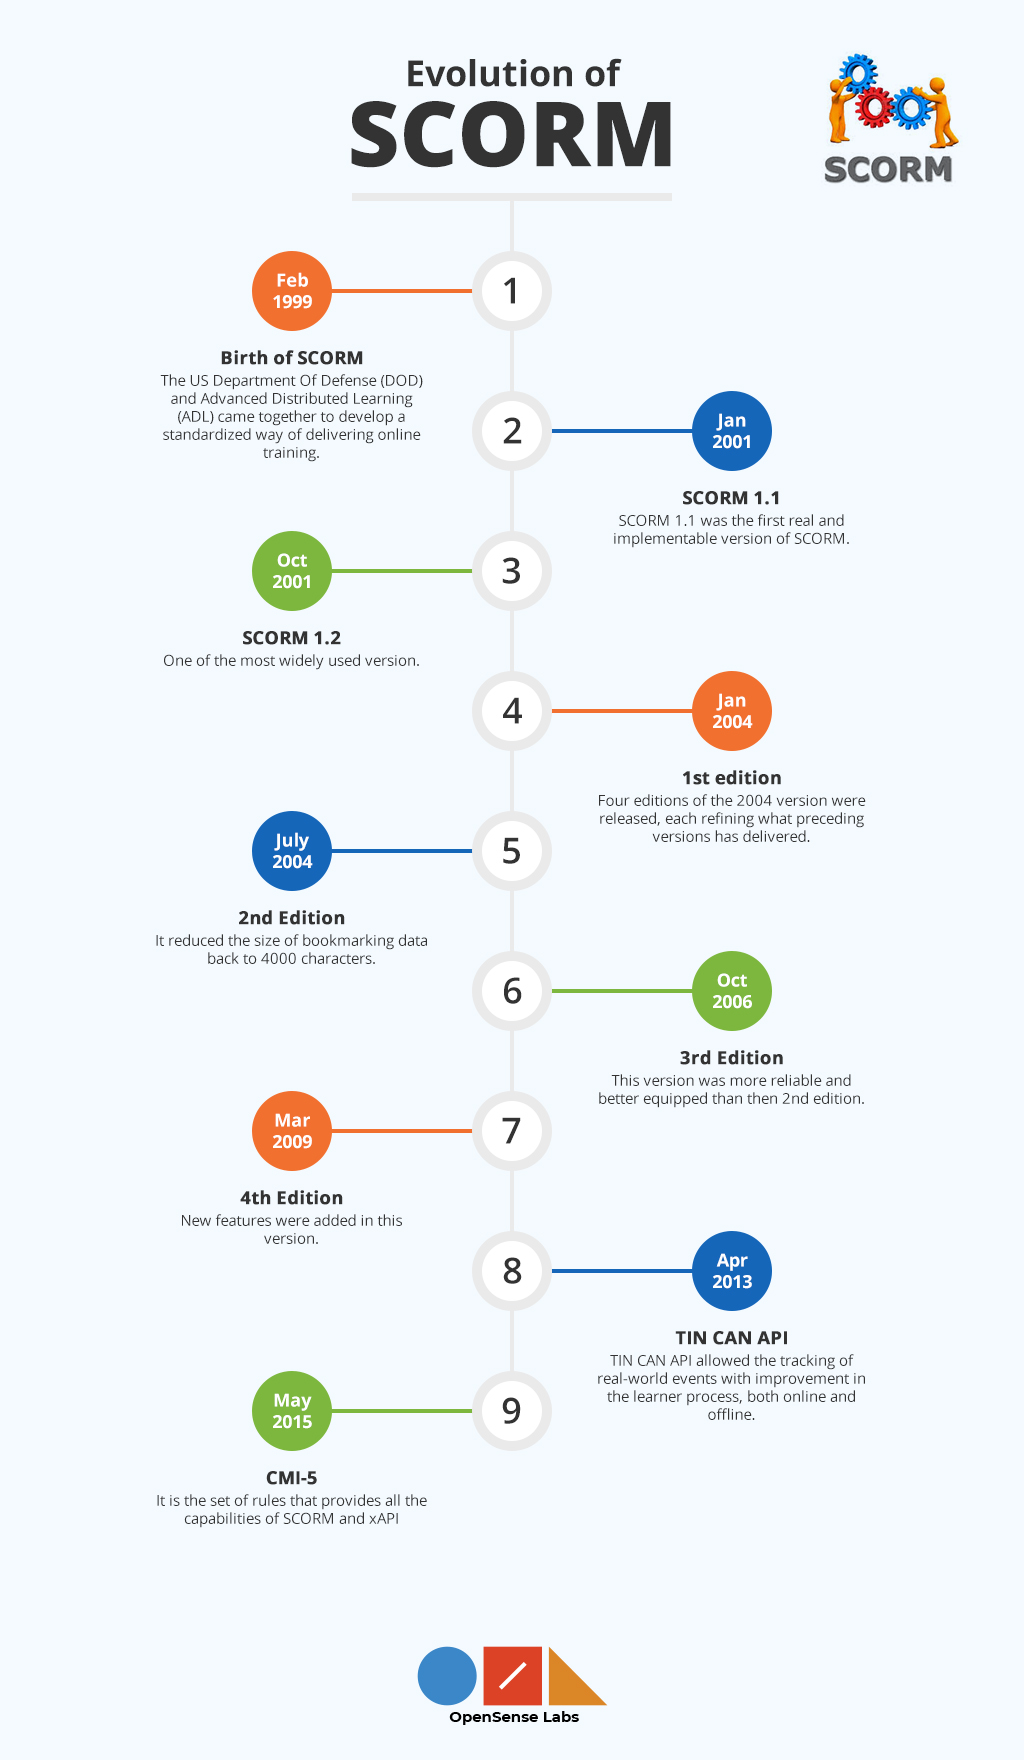 Infographic on the evolution of SCORM